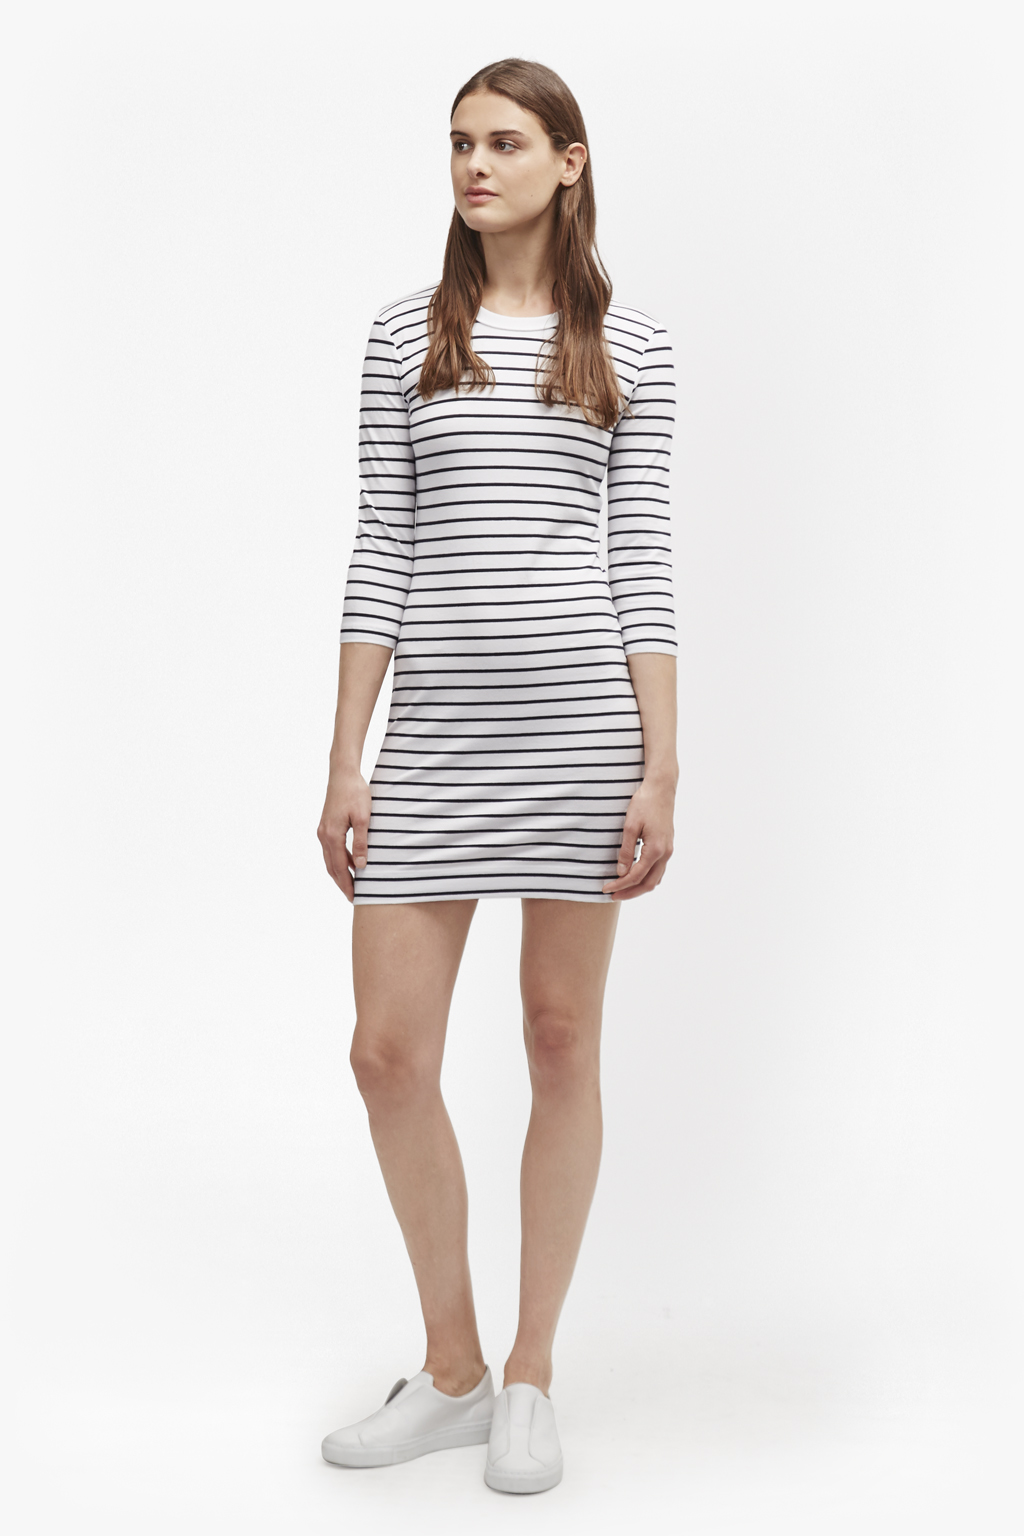 Sale Manchester Cheapest Price Cheap Price French Connection Tim Tim Striped Dress Cost Cheap Online 7QMG74